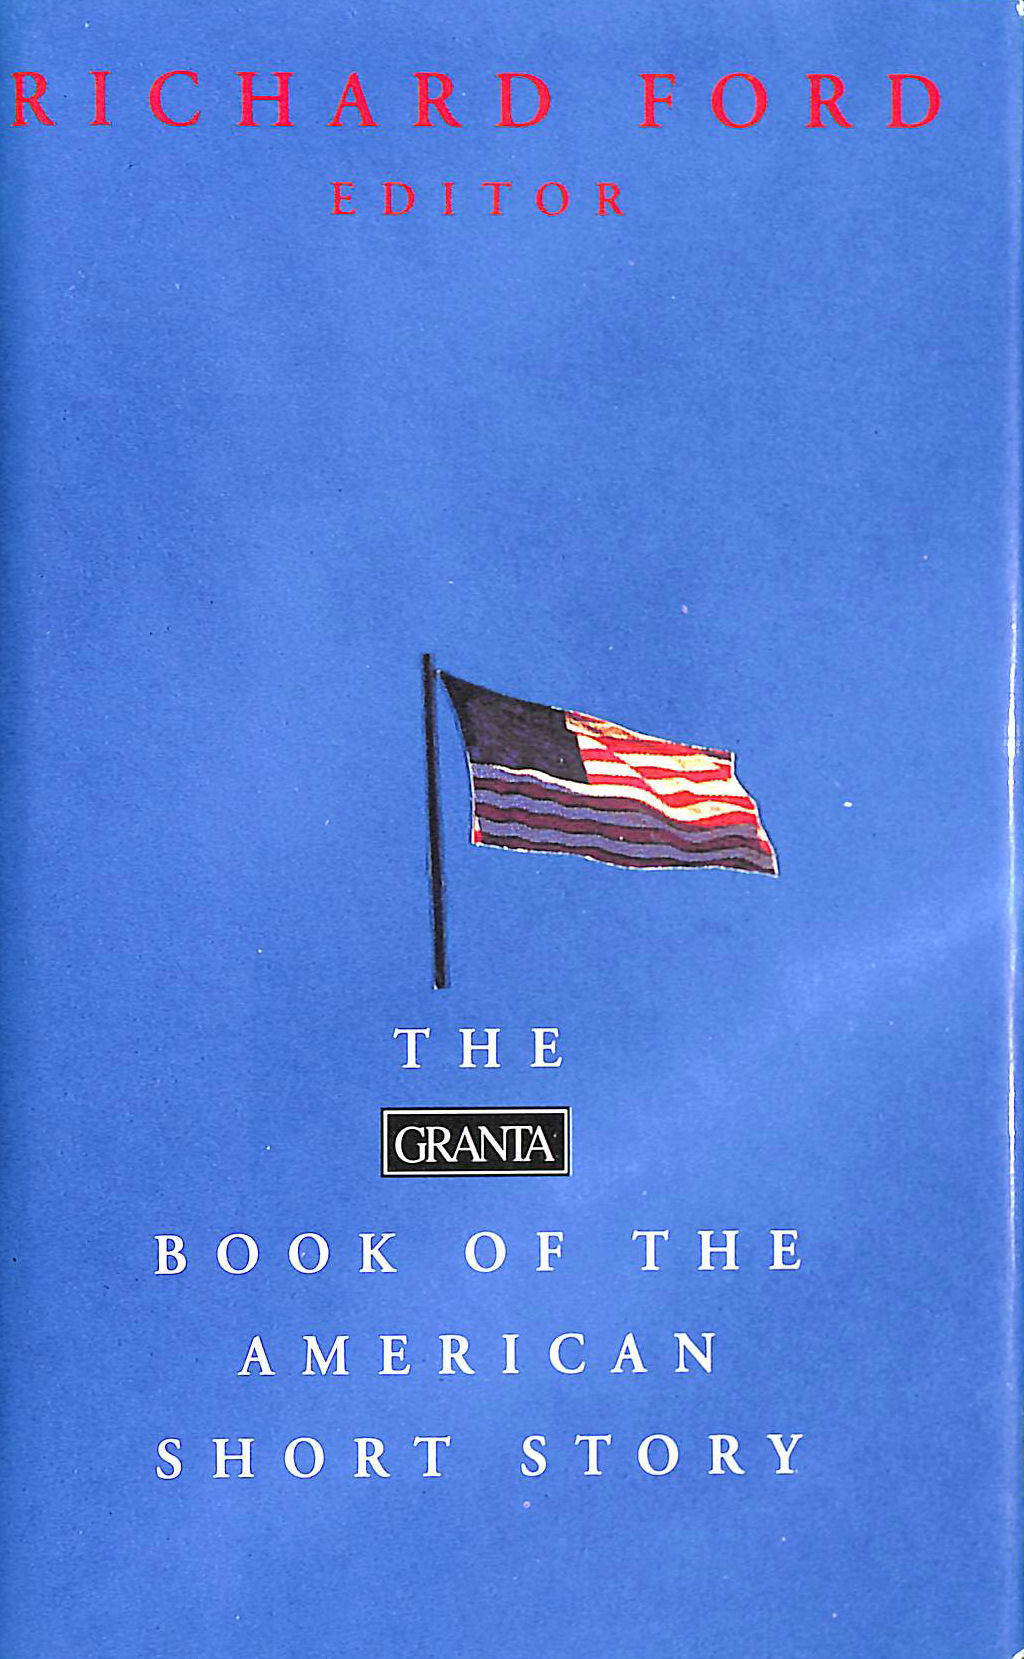 Image for The Granta Book of the American Short Story